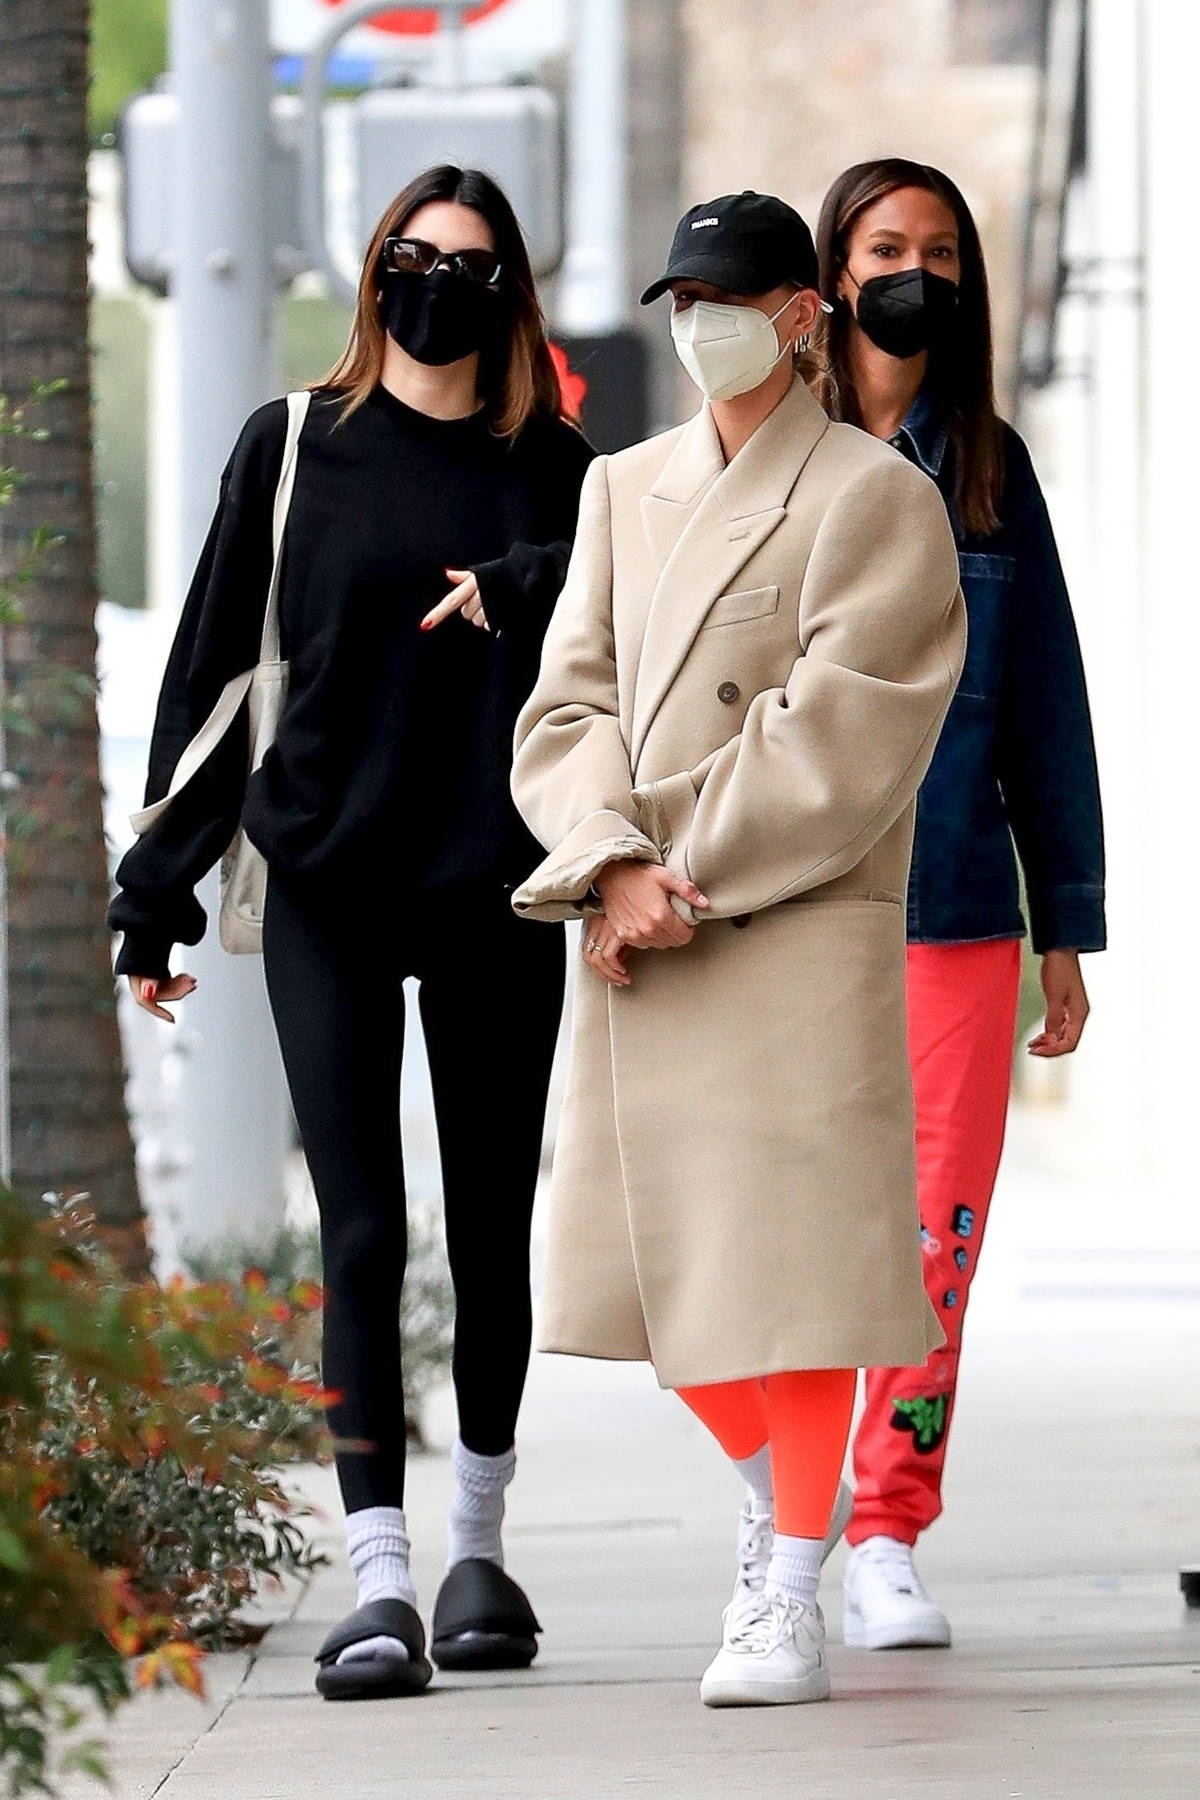 Kendall Jenner, Hailey Bieber, and Joan Smalls grab a bite to eat in West Hollywood, California